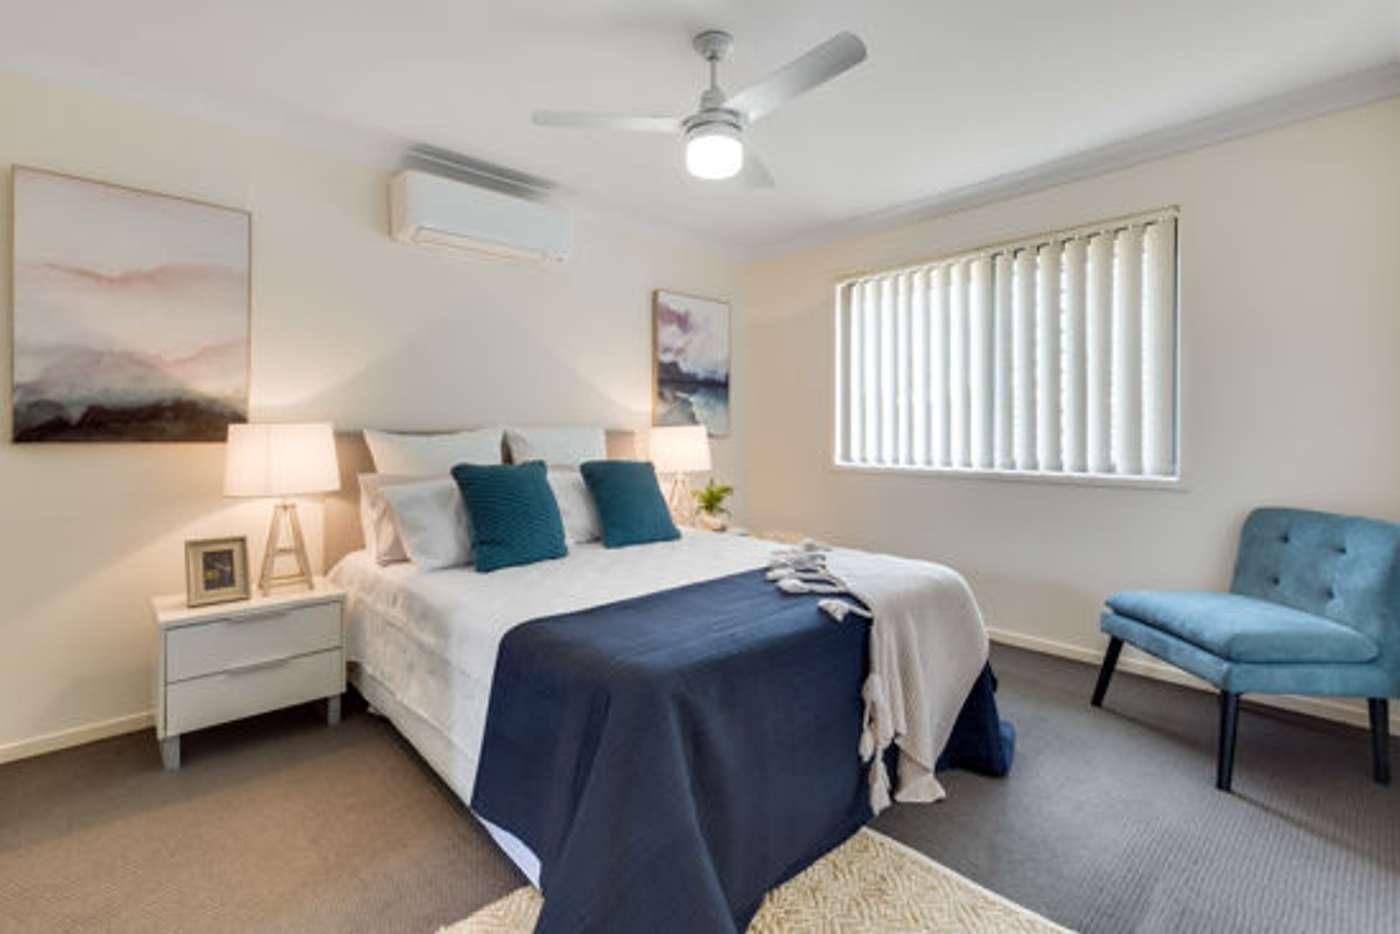 Sixth view of Homely house listing, 17 Parklane Crescent, Beaconsfield QLD 4740